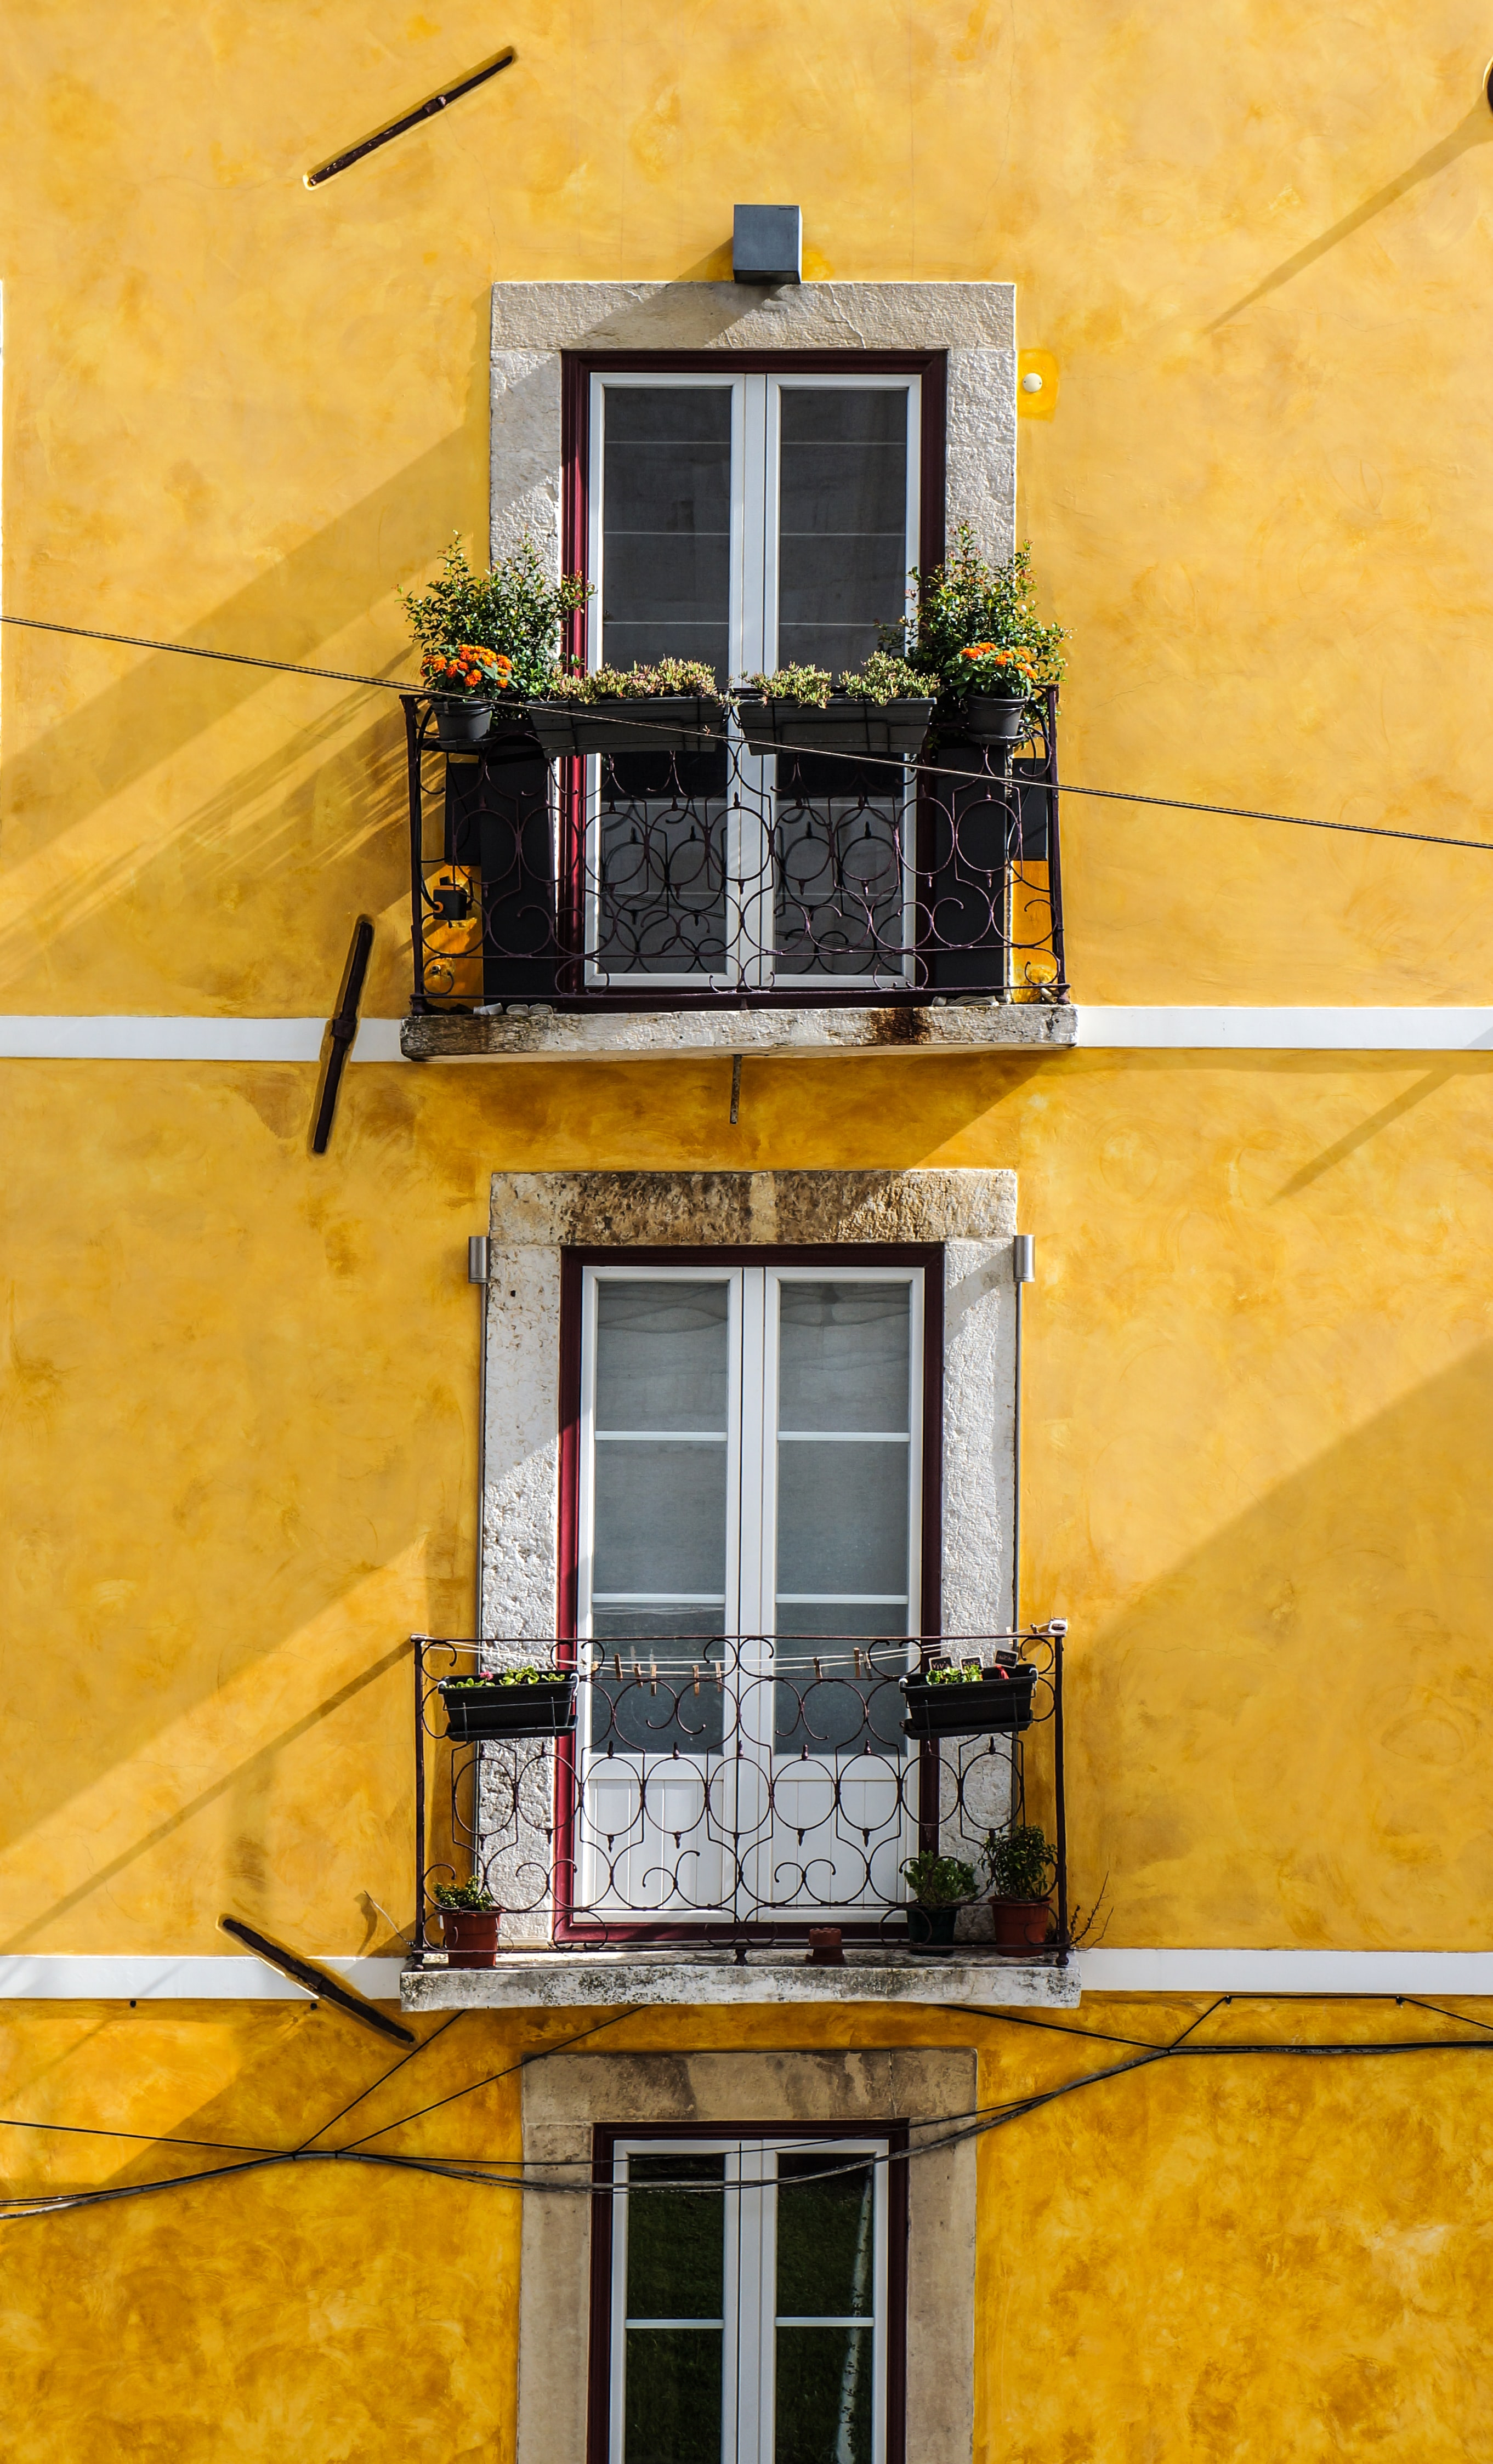 Windows and balconies of a yellow building.